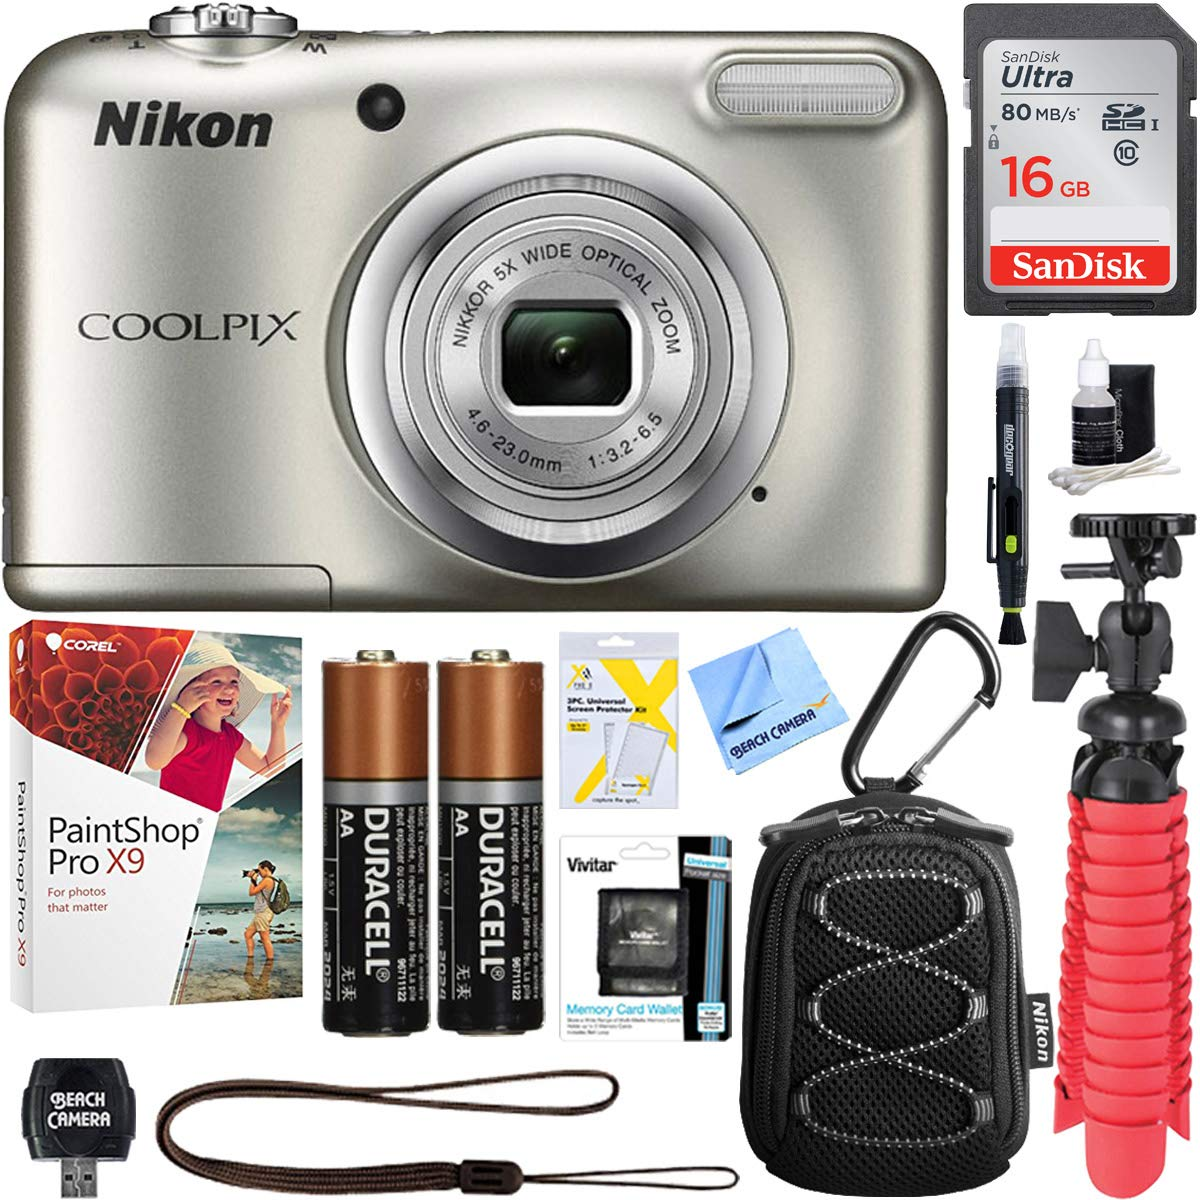 Nikon COOLPIX A10 16.1MP 5X Optical Zoom NIKKOR Glass Lens Digital Camera (Silver) + 16GB Class 10 High-Speed SDHC Memory Card + Accessory Bundle